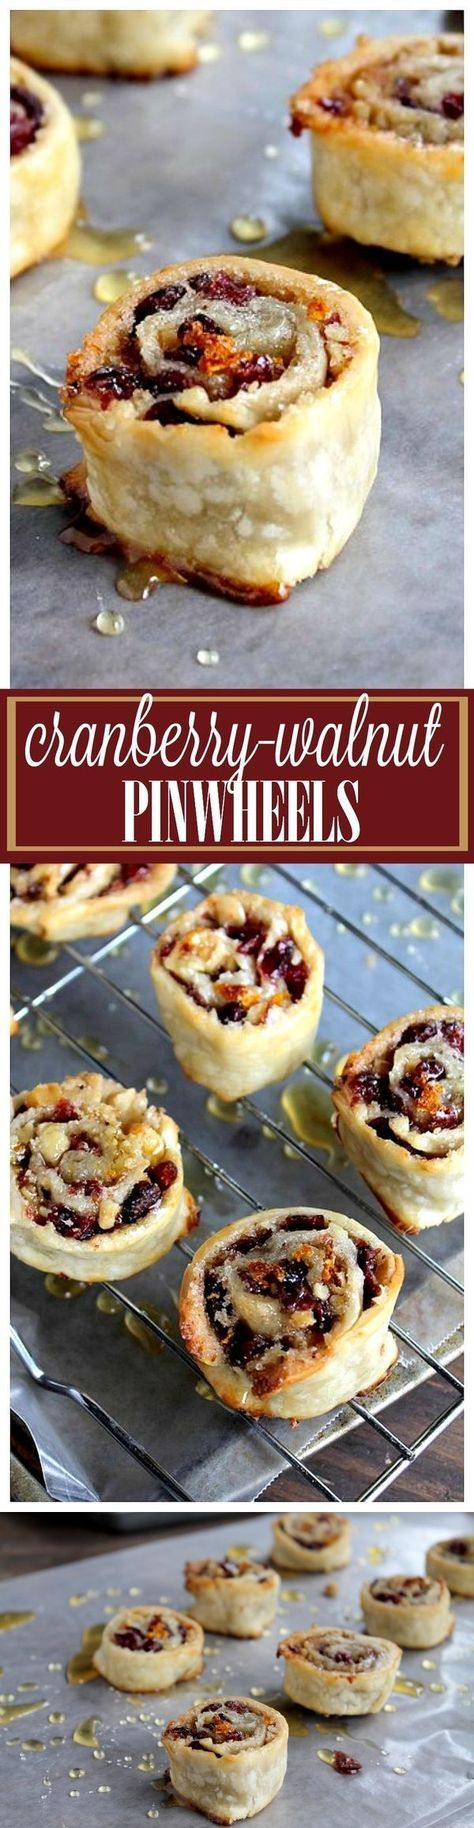 Cranberry-Walnut Pinwheels | Recipe from coorec.com | http://www.coorec.com/p/cranberry-and-walnut-pinwheels